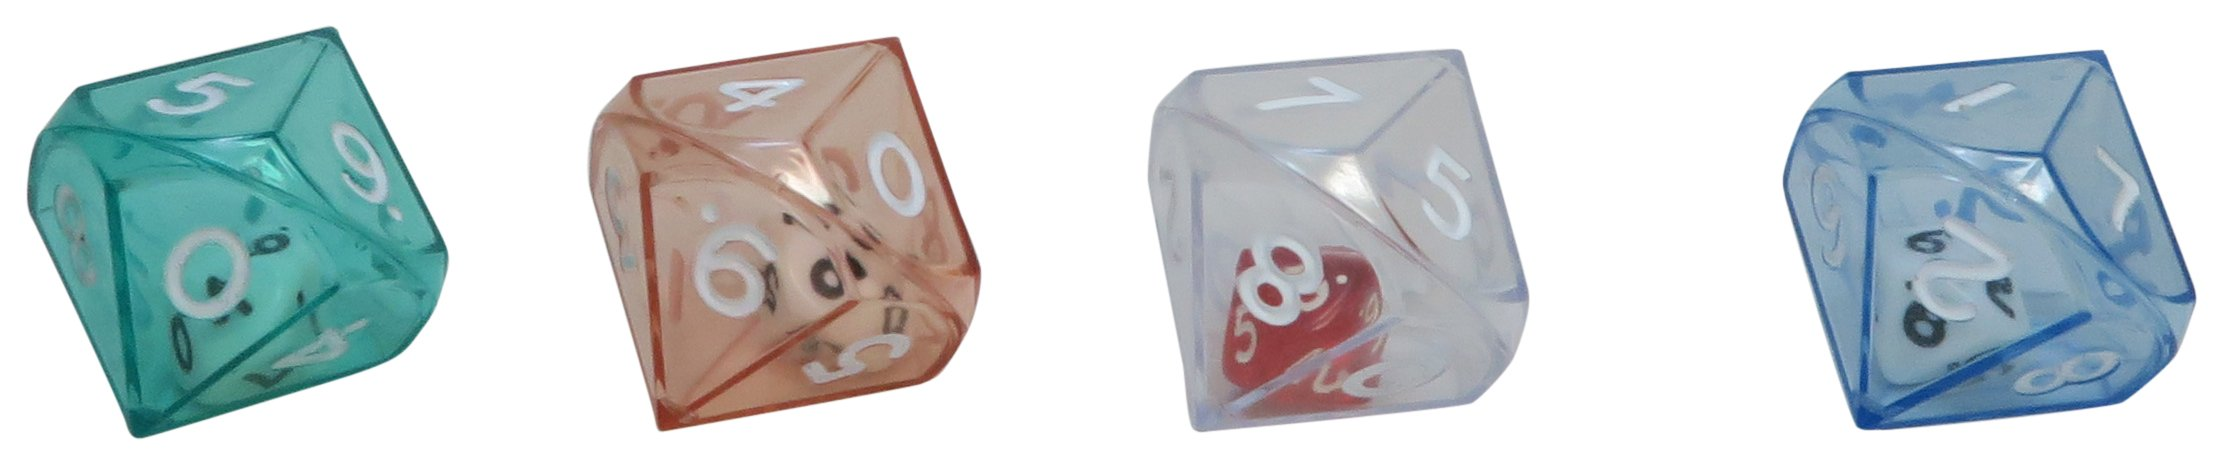 Image mission wood mirror company Dice 10 Surface TRO (4 Pieces) KGS 3250